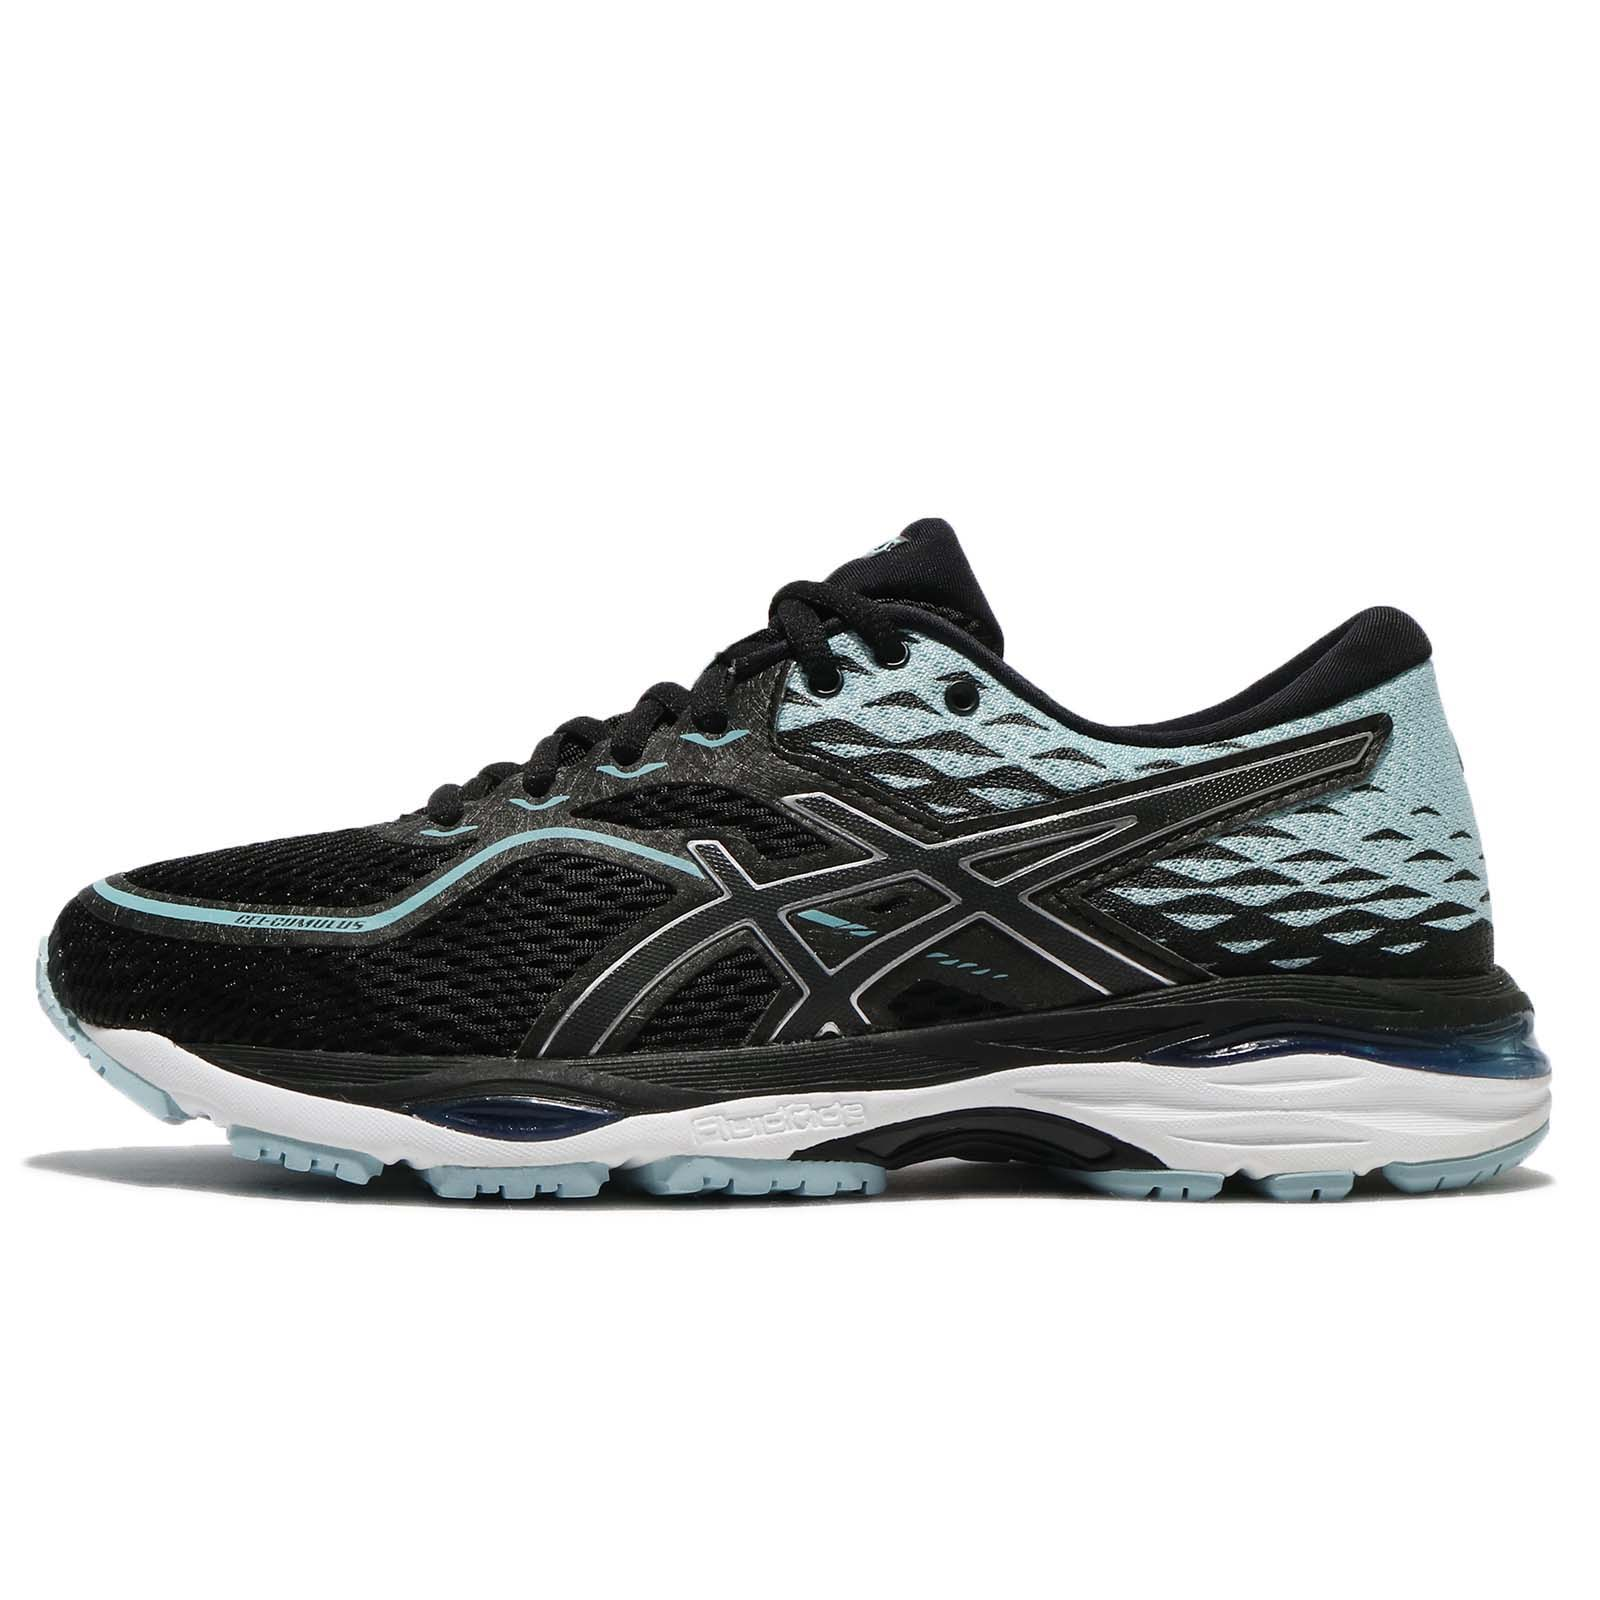 Asics Gel Cumulus 19 D Wide Women Running Athletic Shoes Sneakers Trainer Pick 1